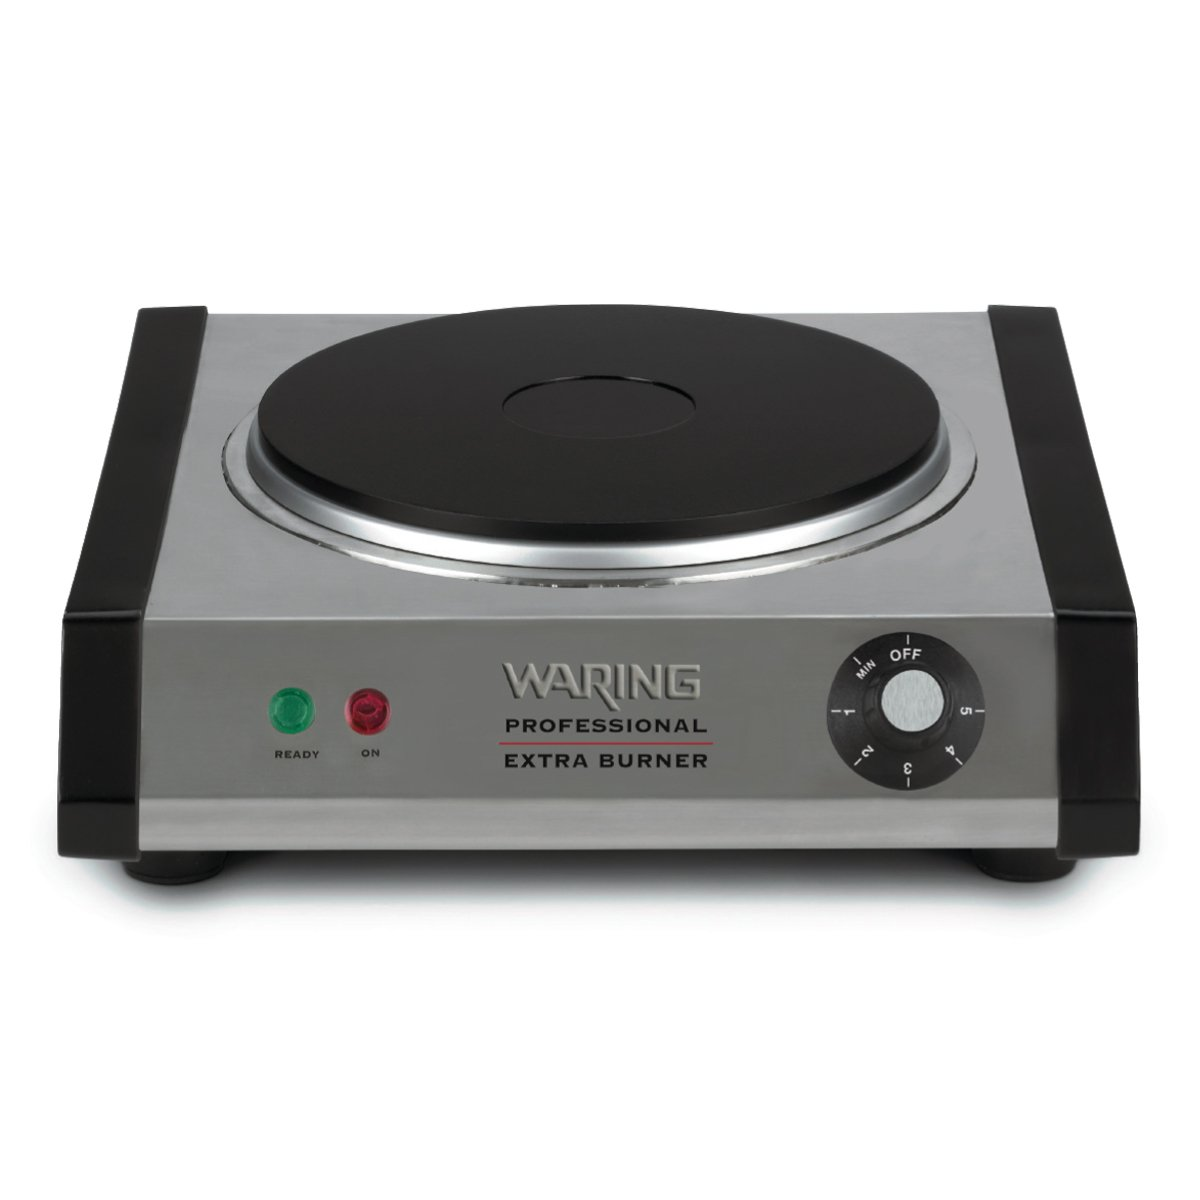 Waring SB30 1300-Watt Portable Single Burner